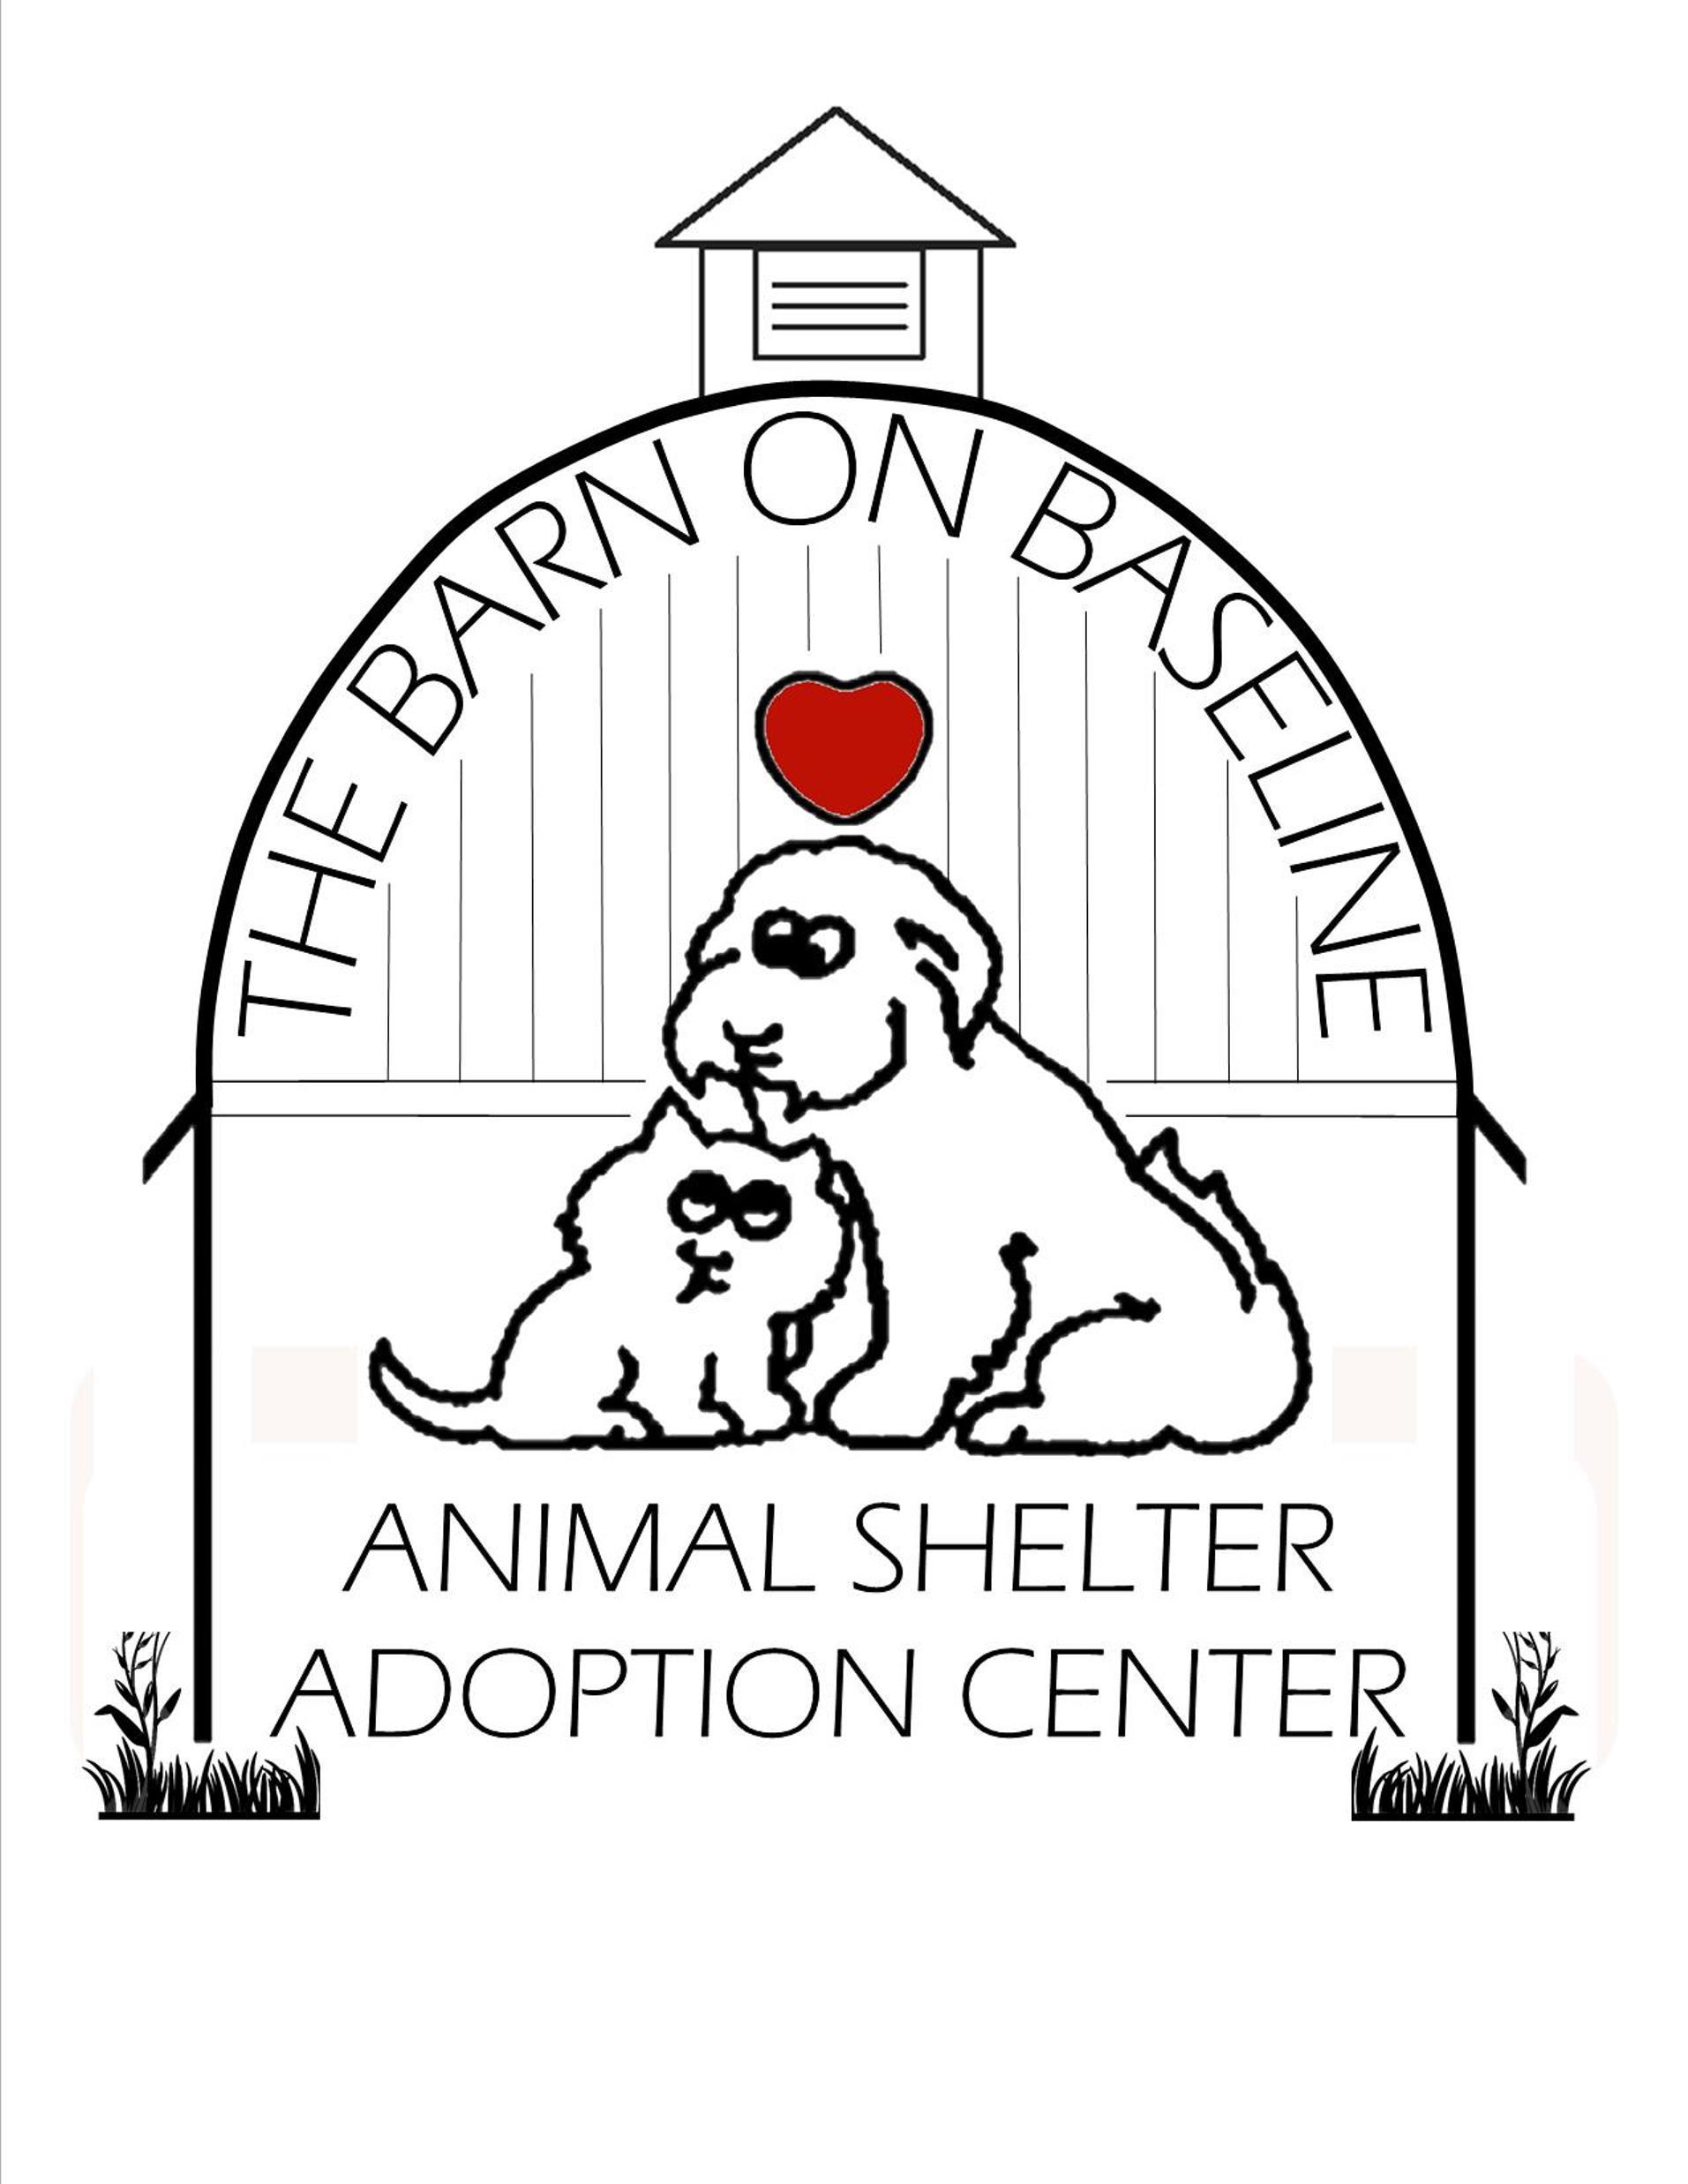 The Barn on Baseline Animal Shelter/Adoption Center